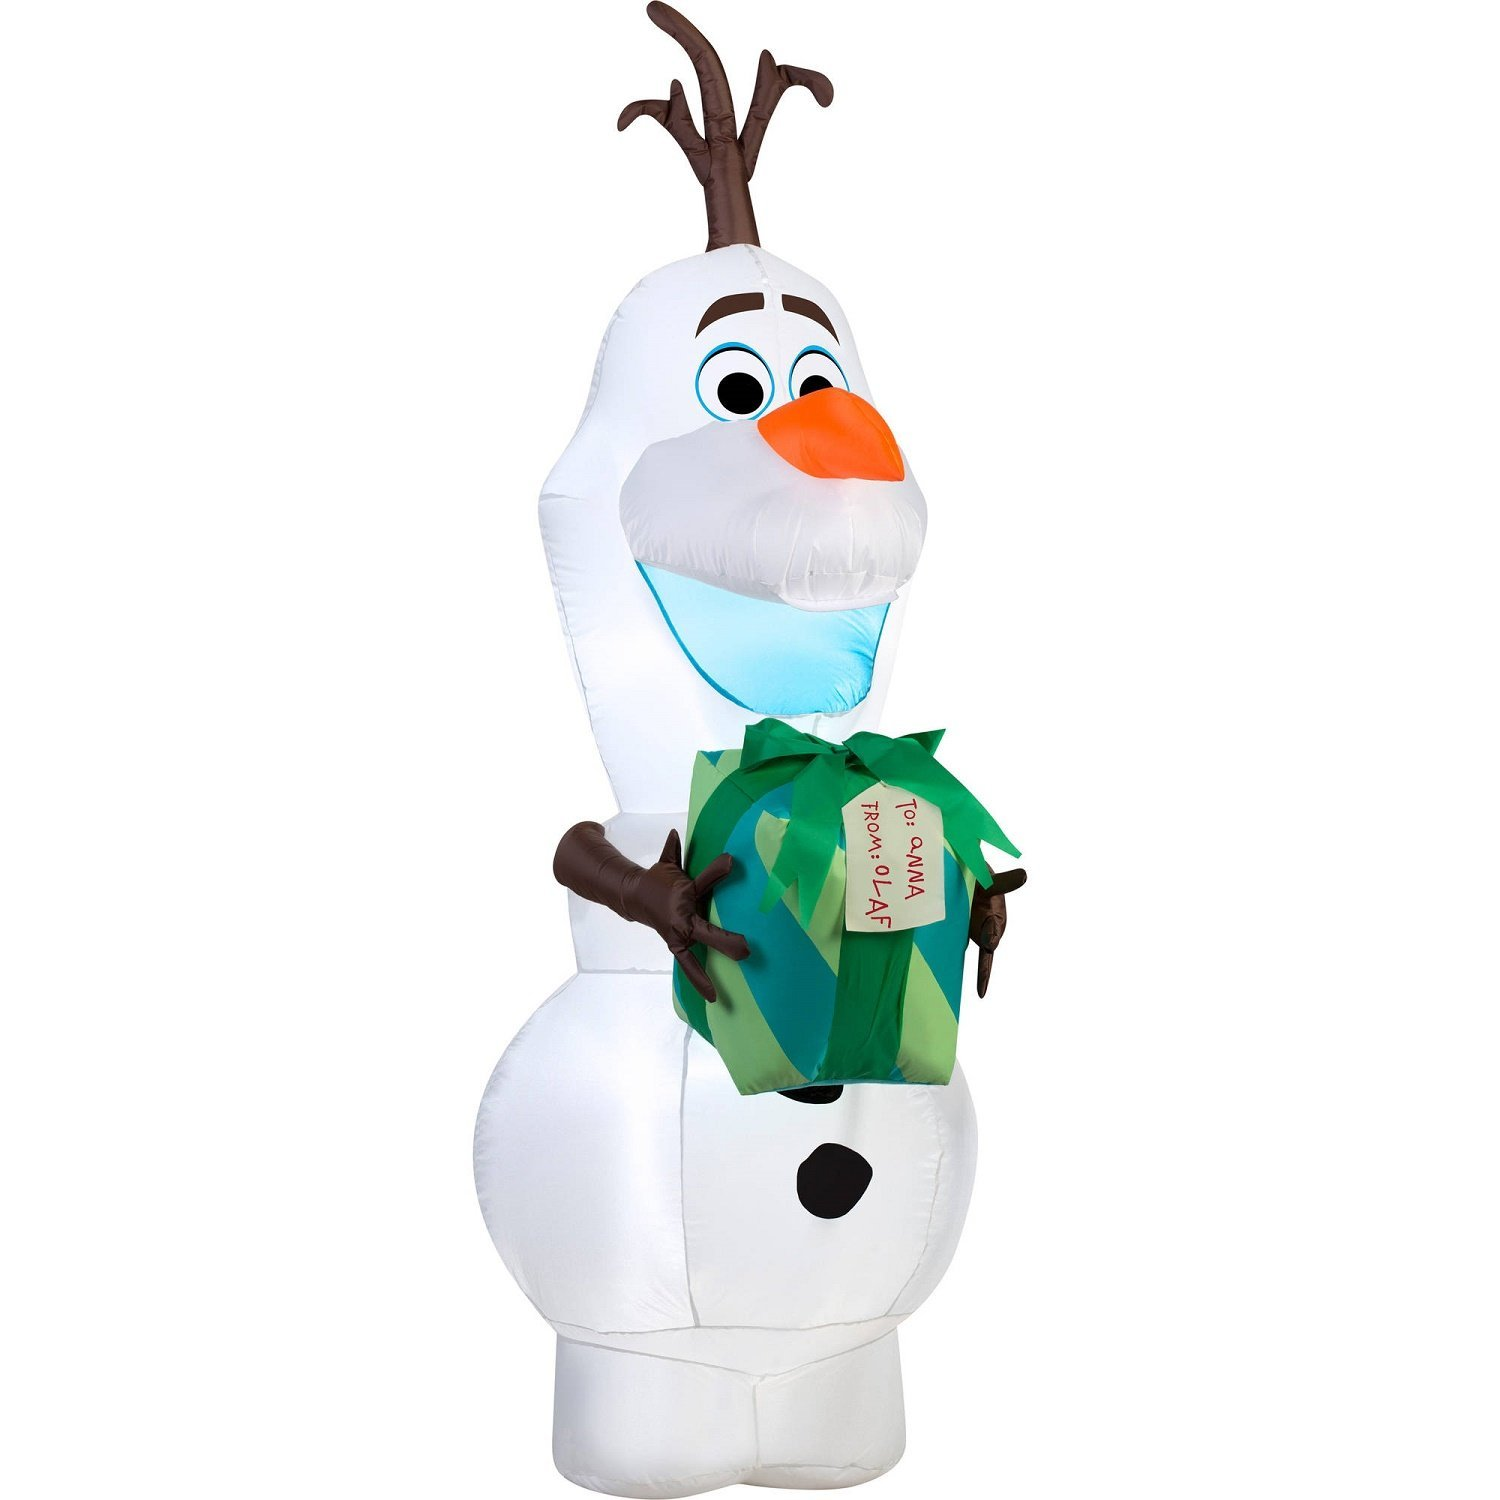 Christmas Disney Olaf with Gift Airblown Yard Decor Airblown Inflatable, 5.5'..., By Gemmy Ship from US